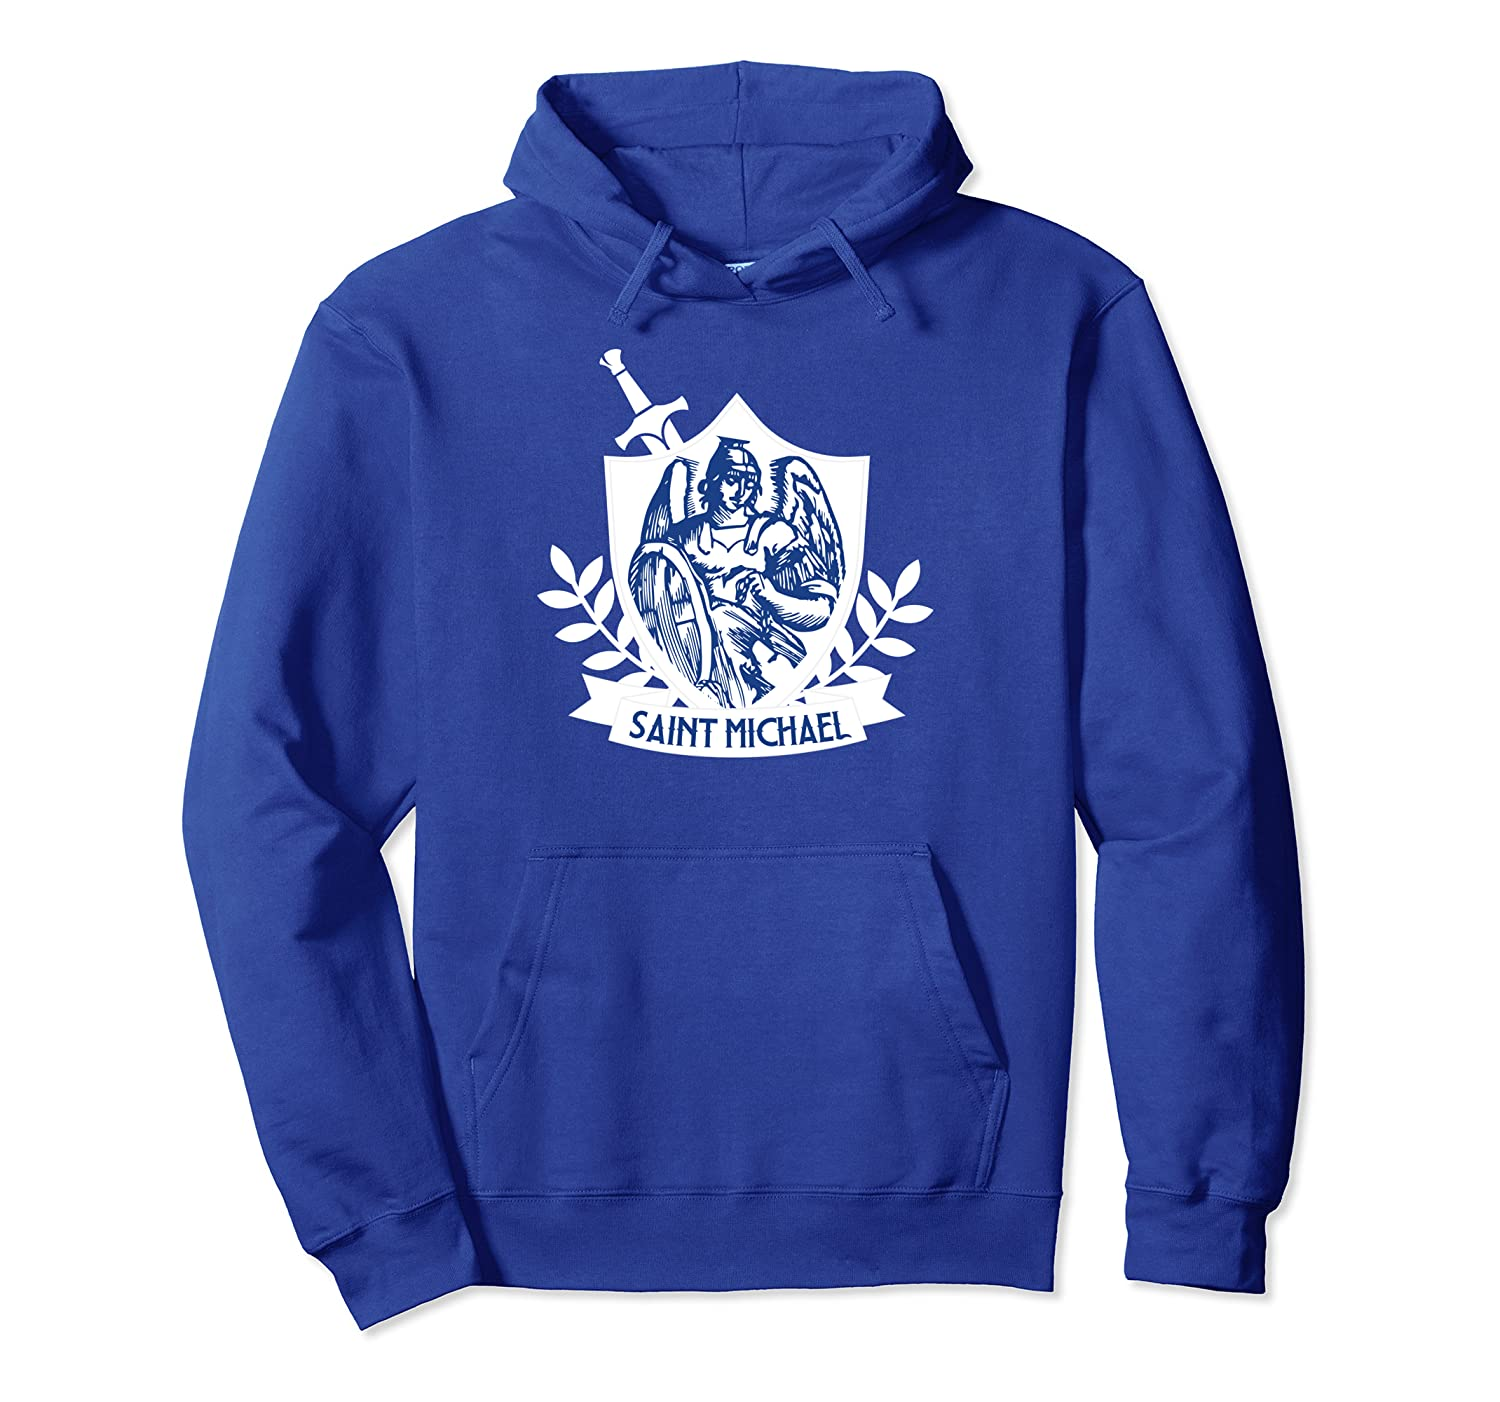 St. Michael the Archangel Patron Saint of Police Officers Pullover Hoodie